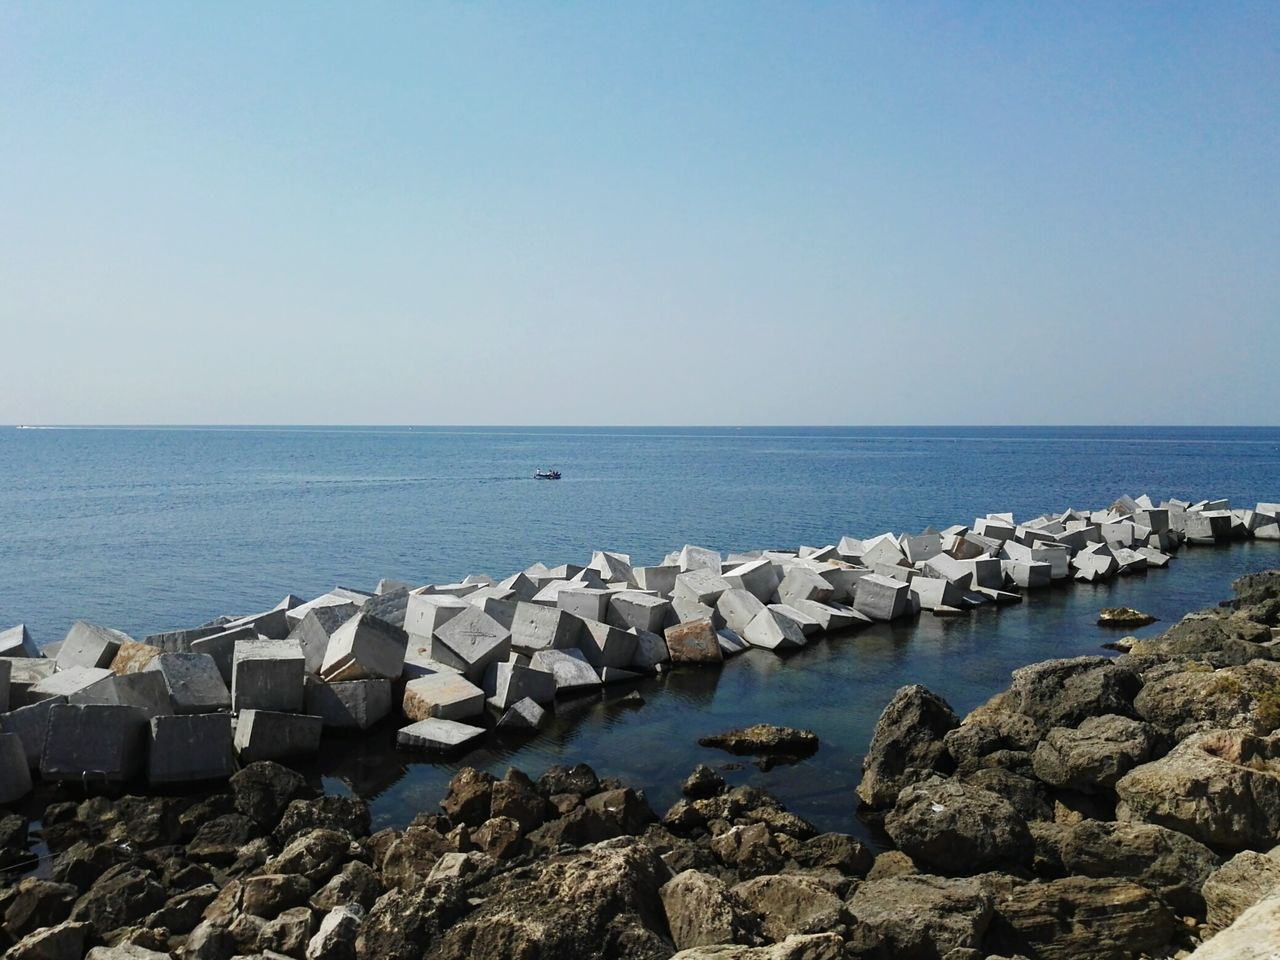 sea, water, sky, horizon over water, horizon, rock, rock - object, beauty in nature, scenics - nature, solid, nature, clear sky, copy space, day, tranquil scene, tranquility, no people, land, beach, groyne